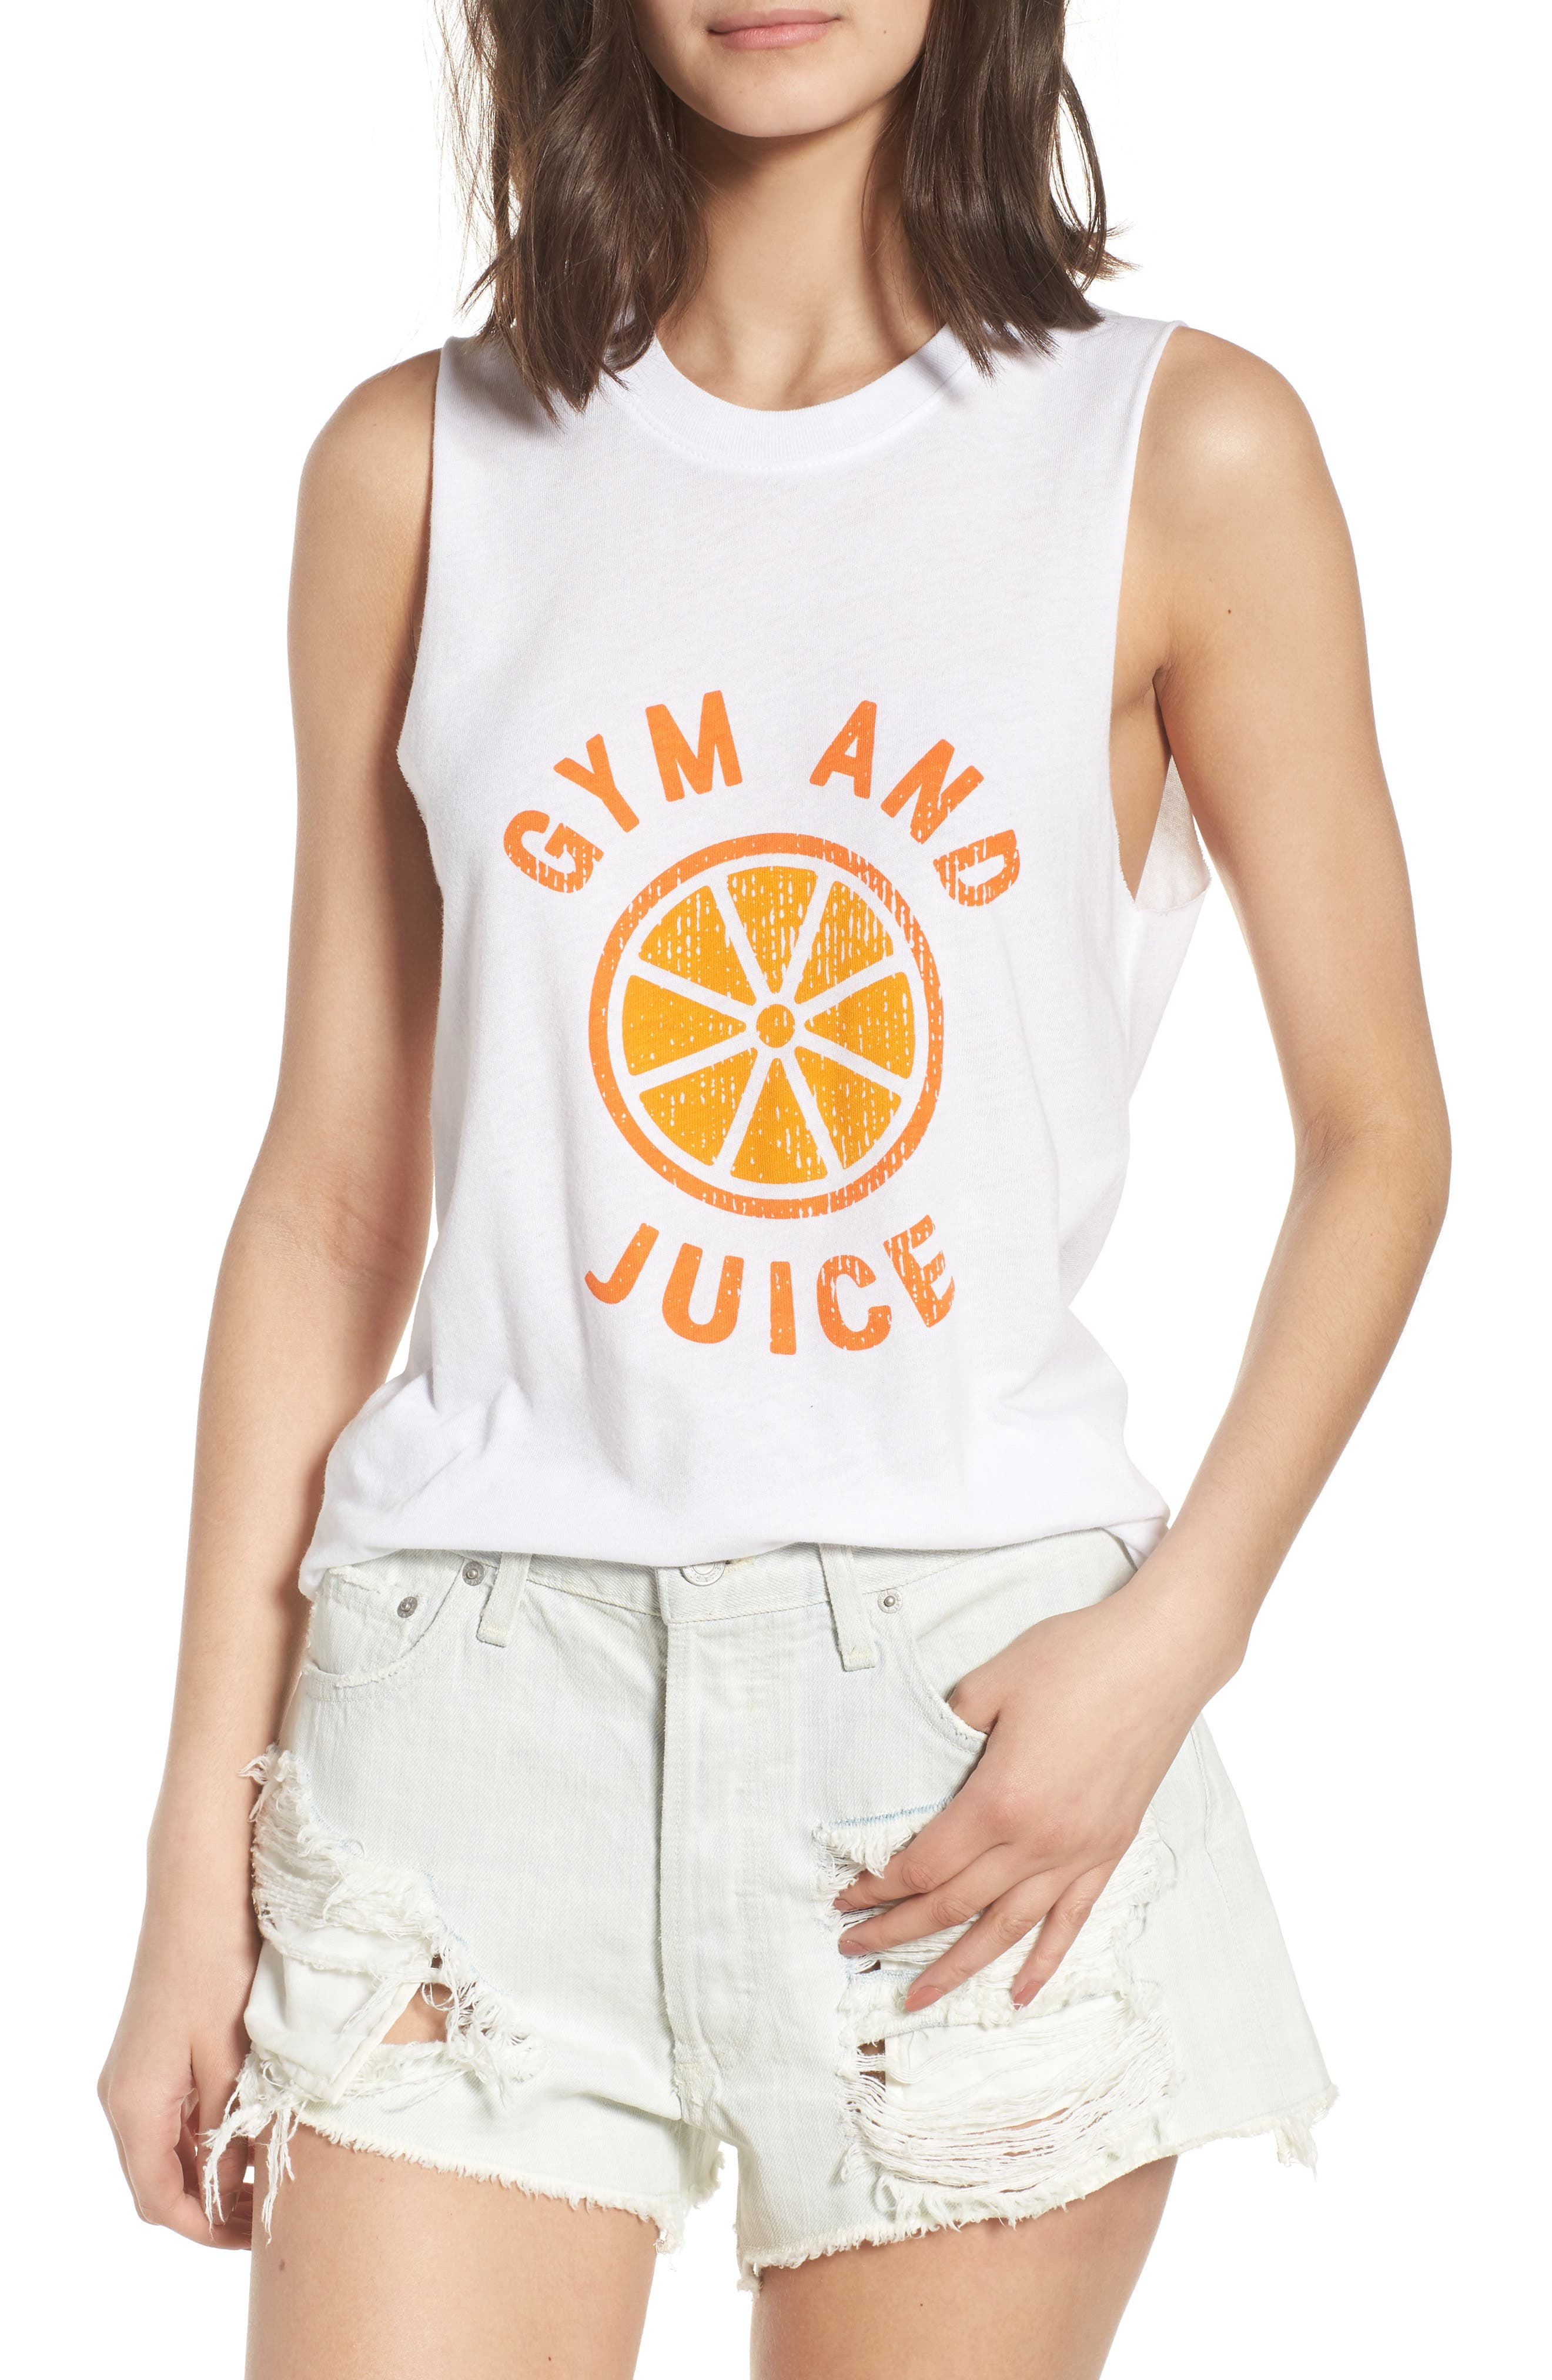 Gym and Juice Muscle Tank Top,                         Main,                         color, White